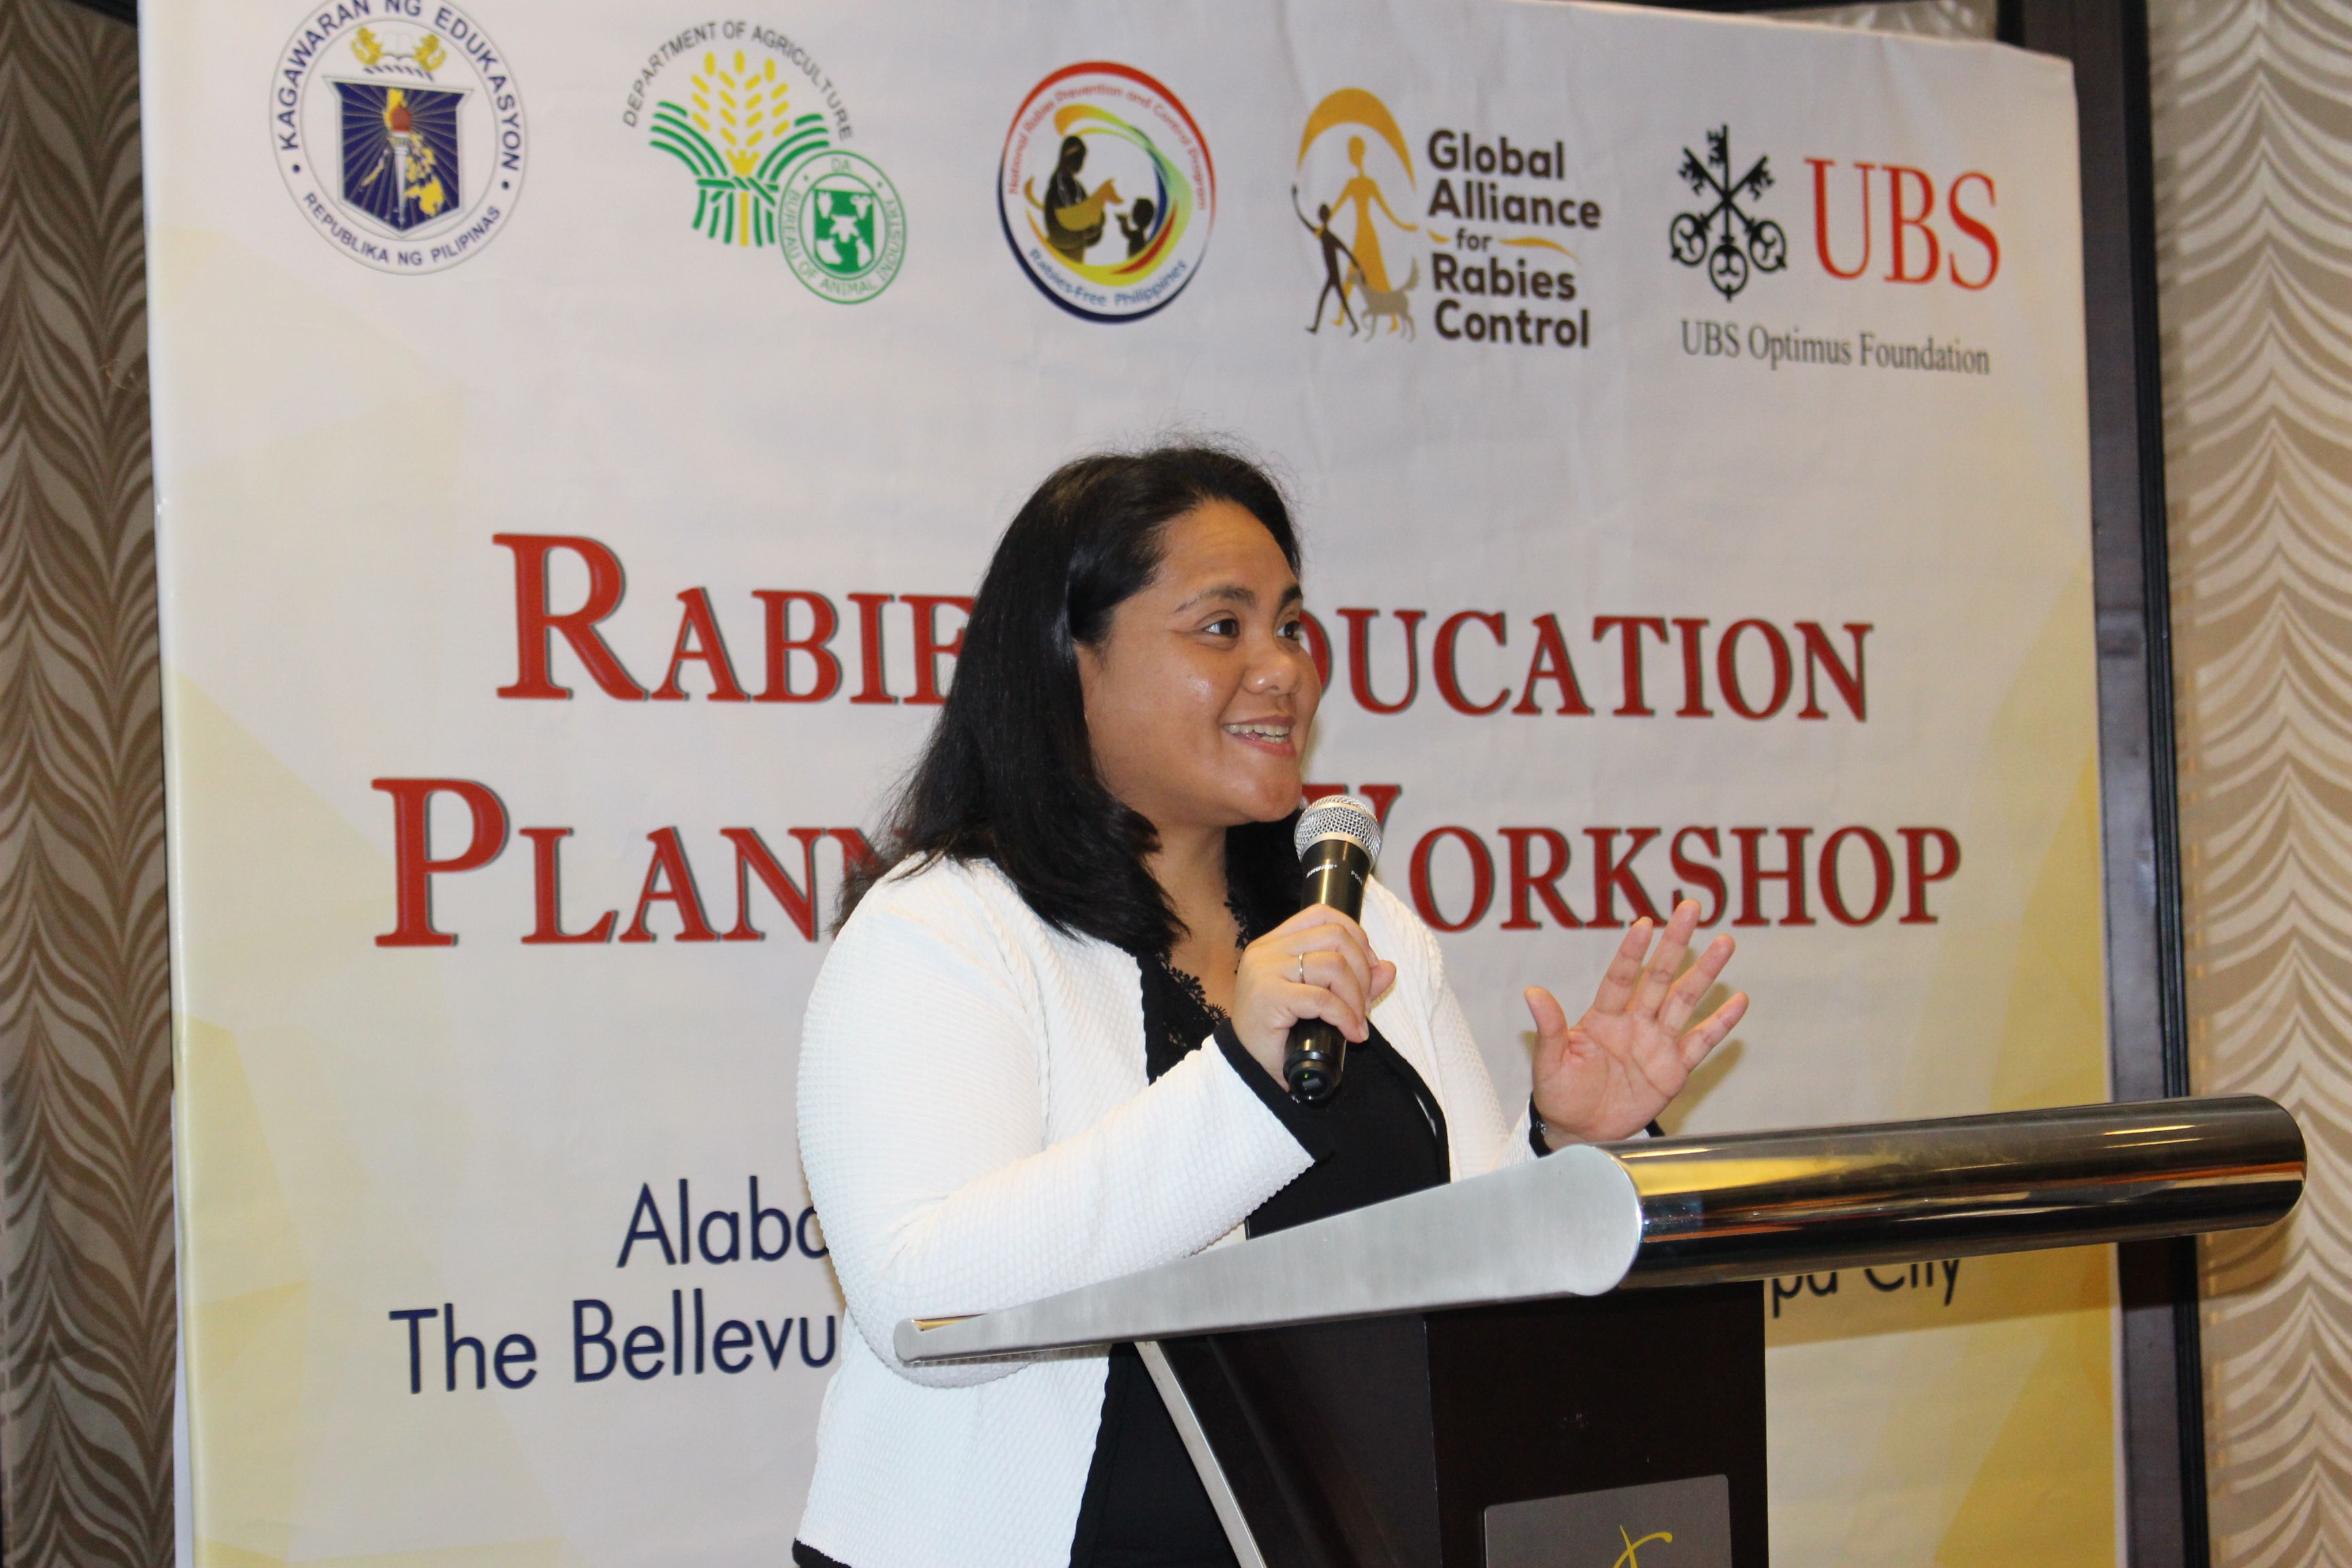 Dr Sarah Jayme presents during a rabies education workshop in the Philippines.